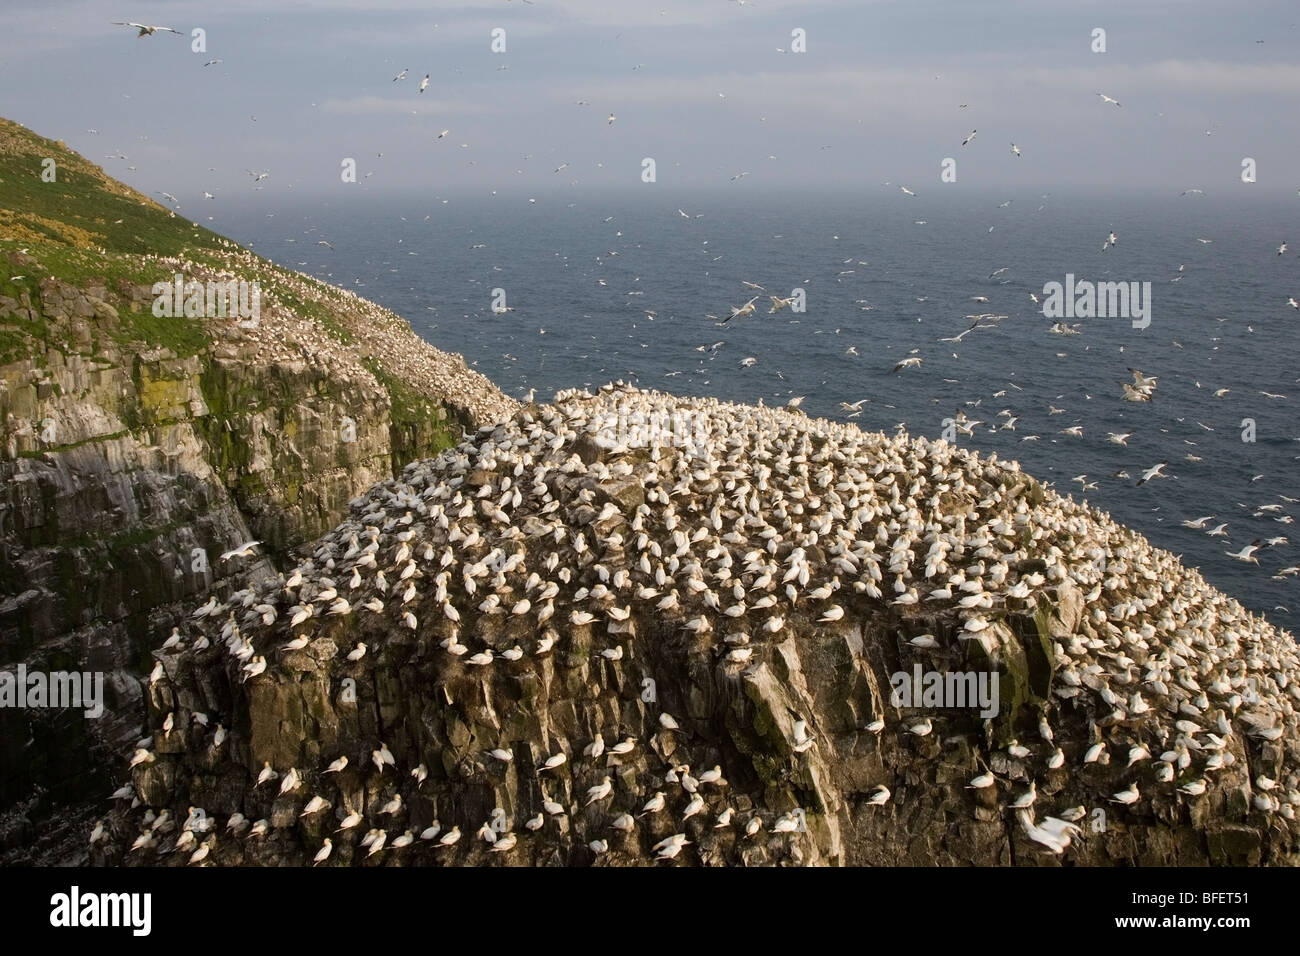 Northern gannet (Morus bassanus) nesting colony on very windy day Bird Rock Cape St. Mary's Ecological Reserve - Stock Image